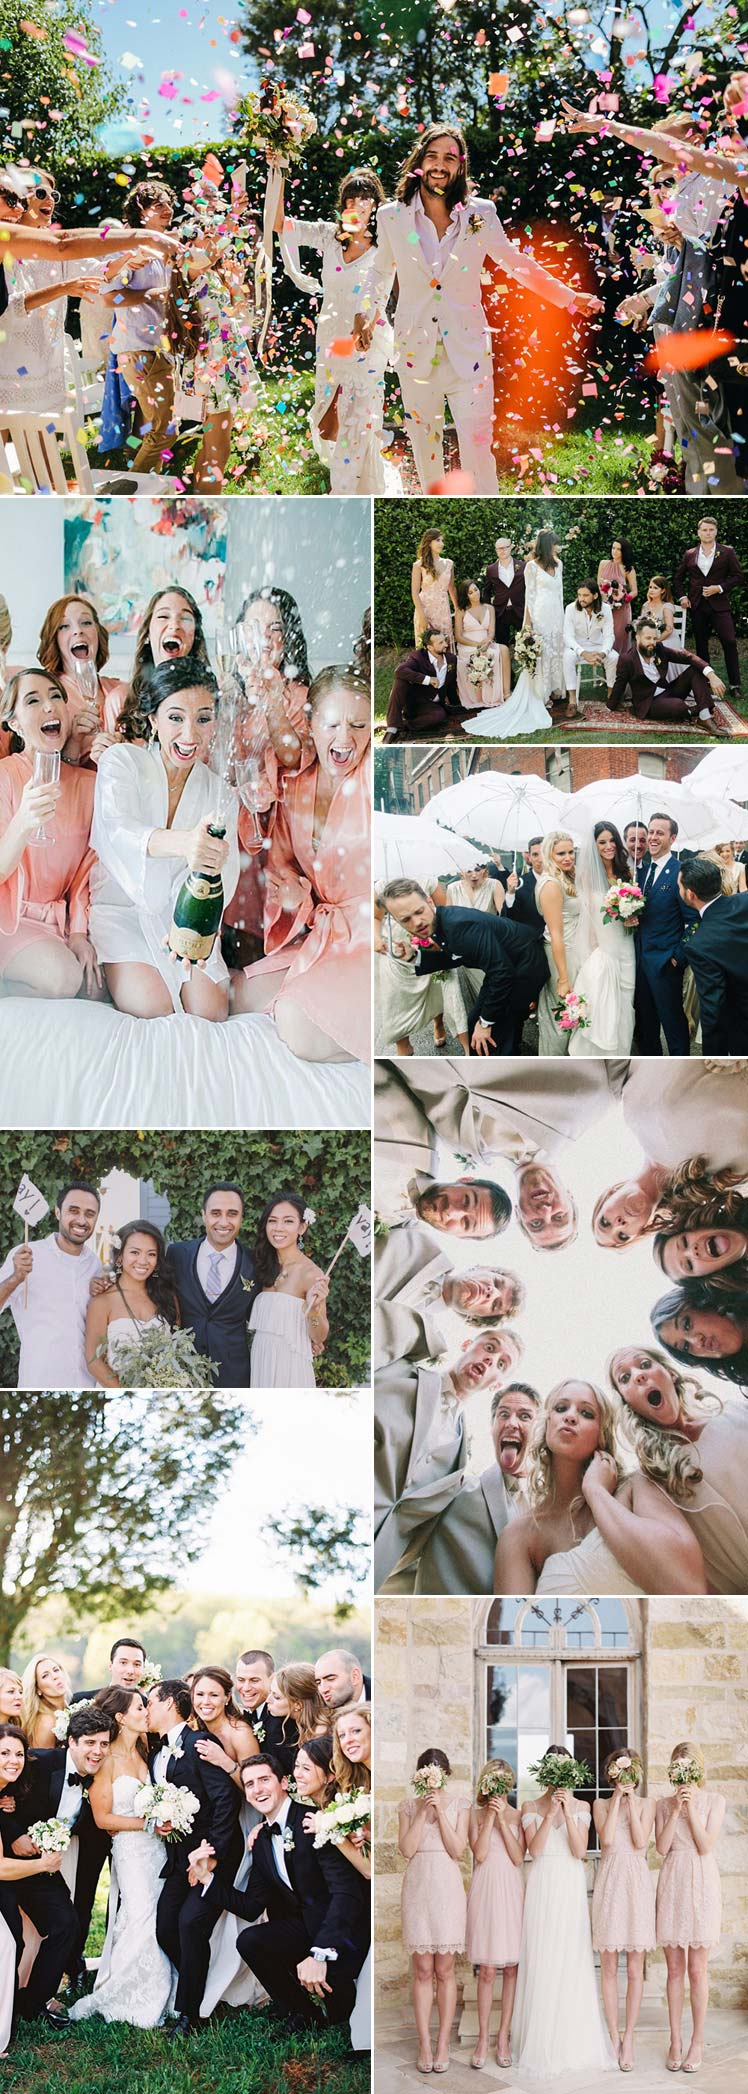 fabulous bridal party photo ideas